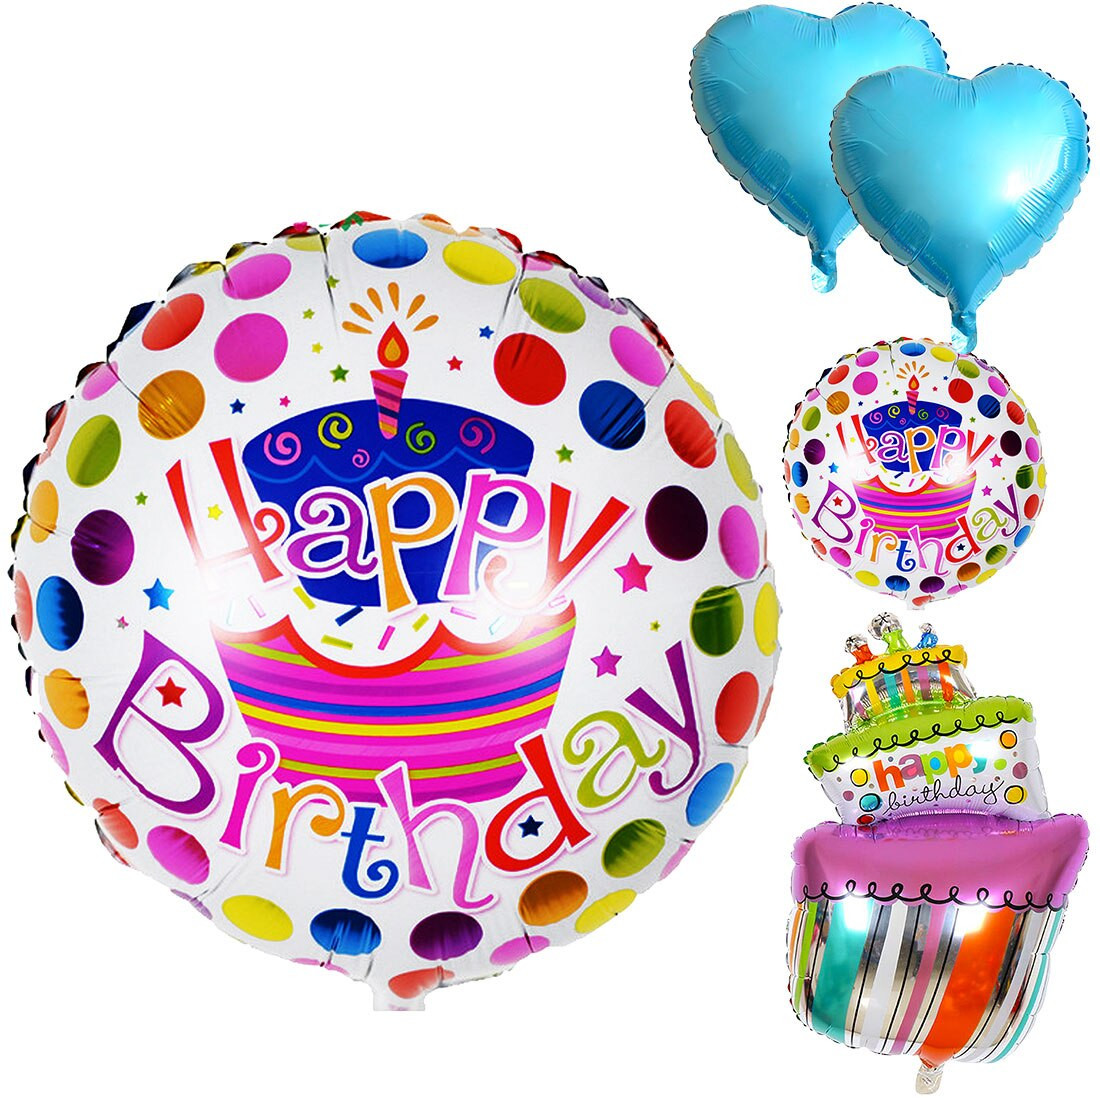 Happy Birthday Cake And Balloons  Party decoration Balloons 5pcs Birthday cake foil balloons